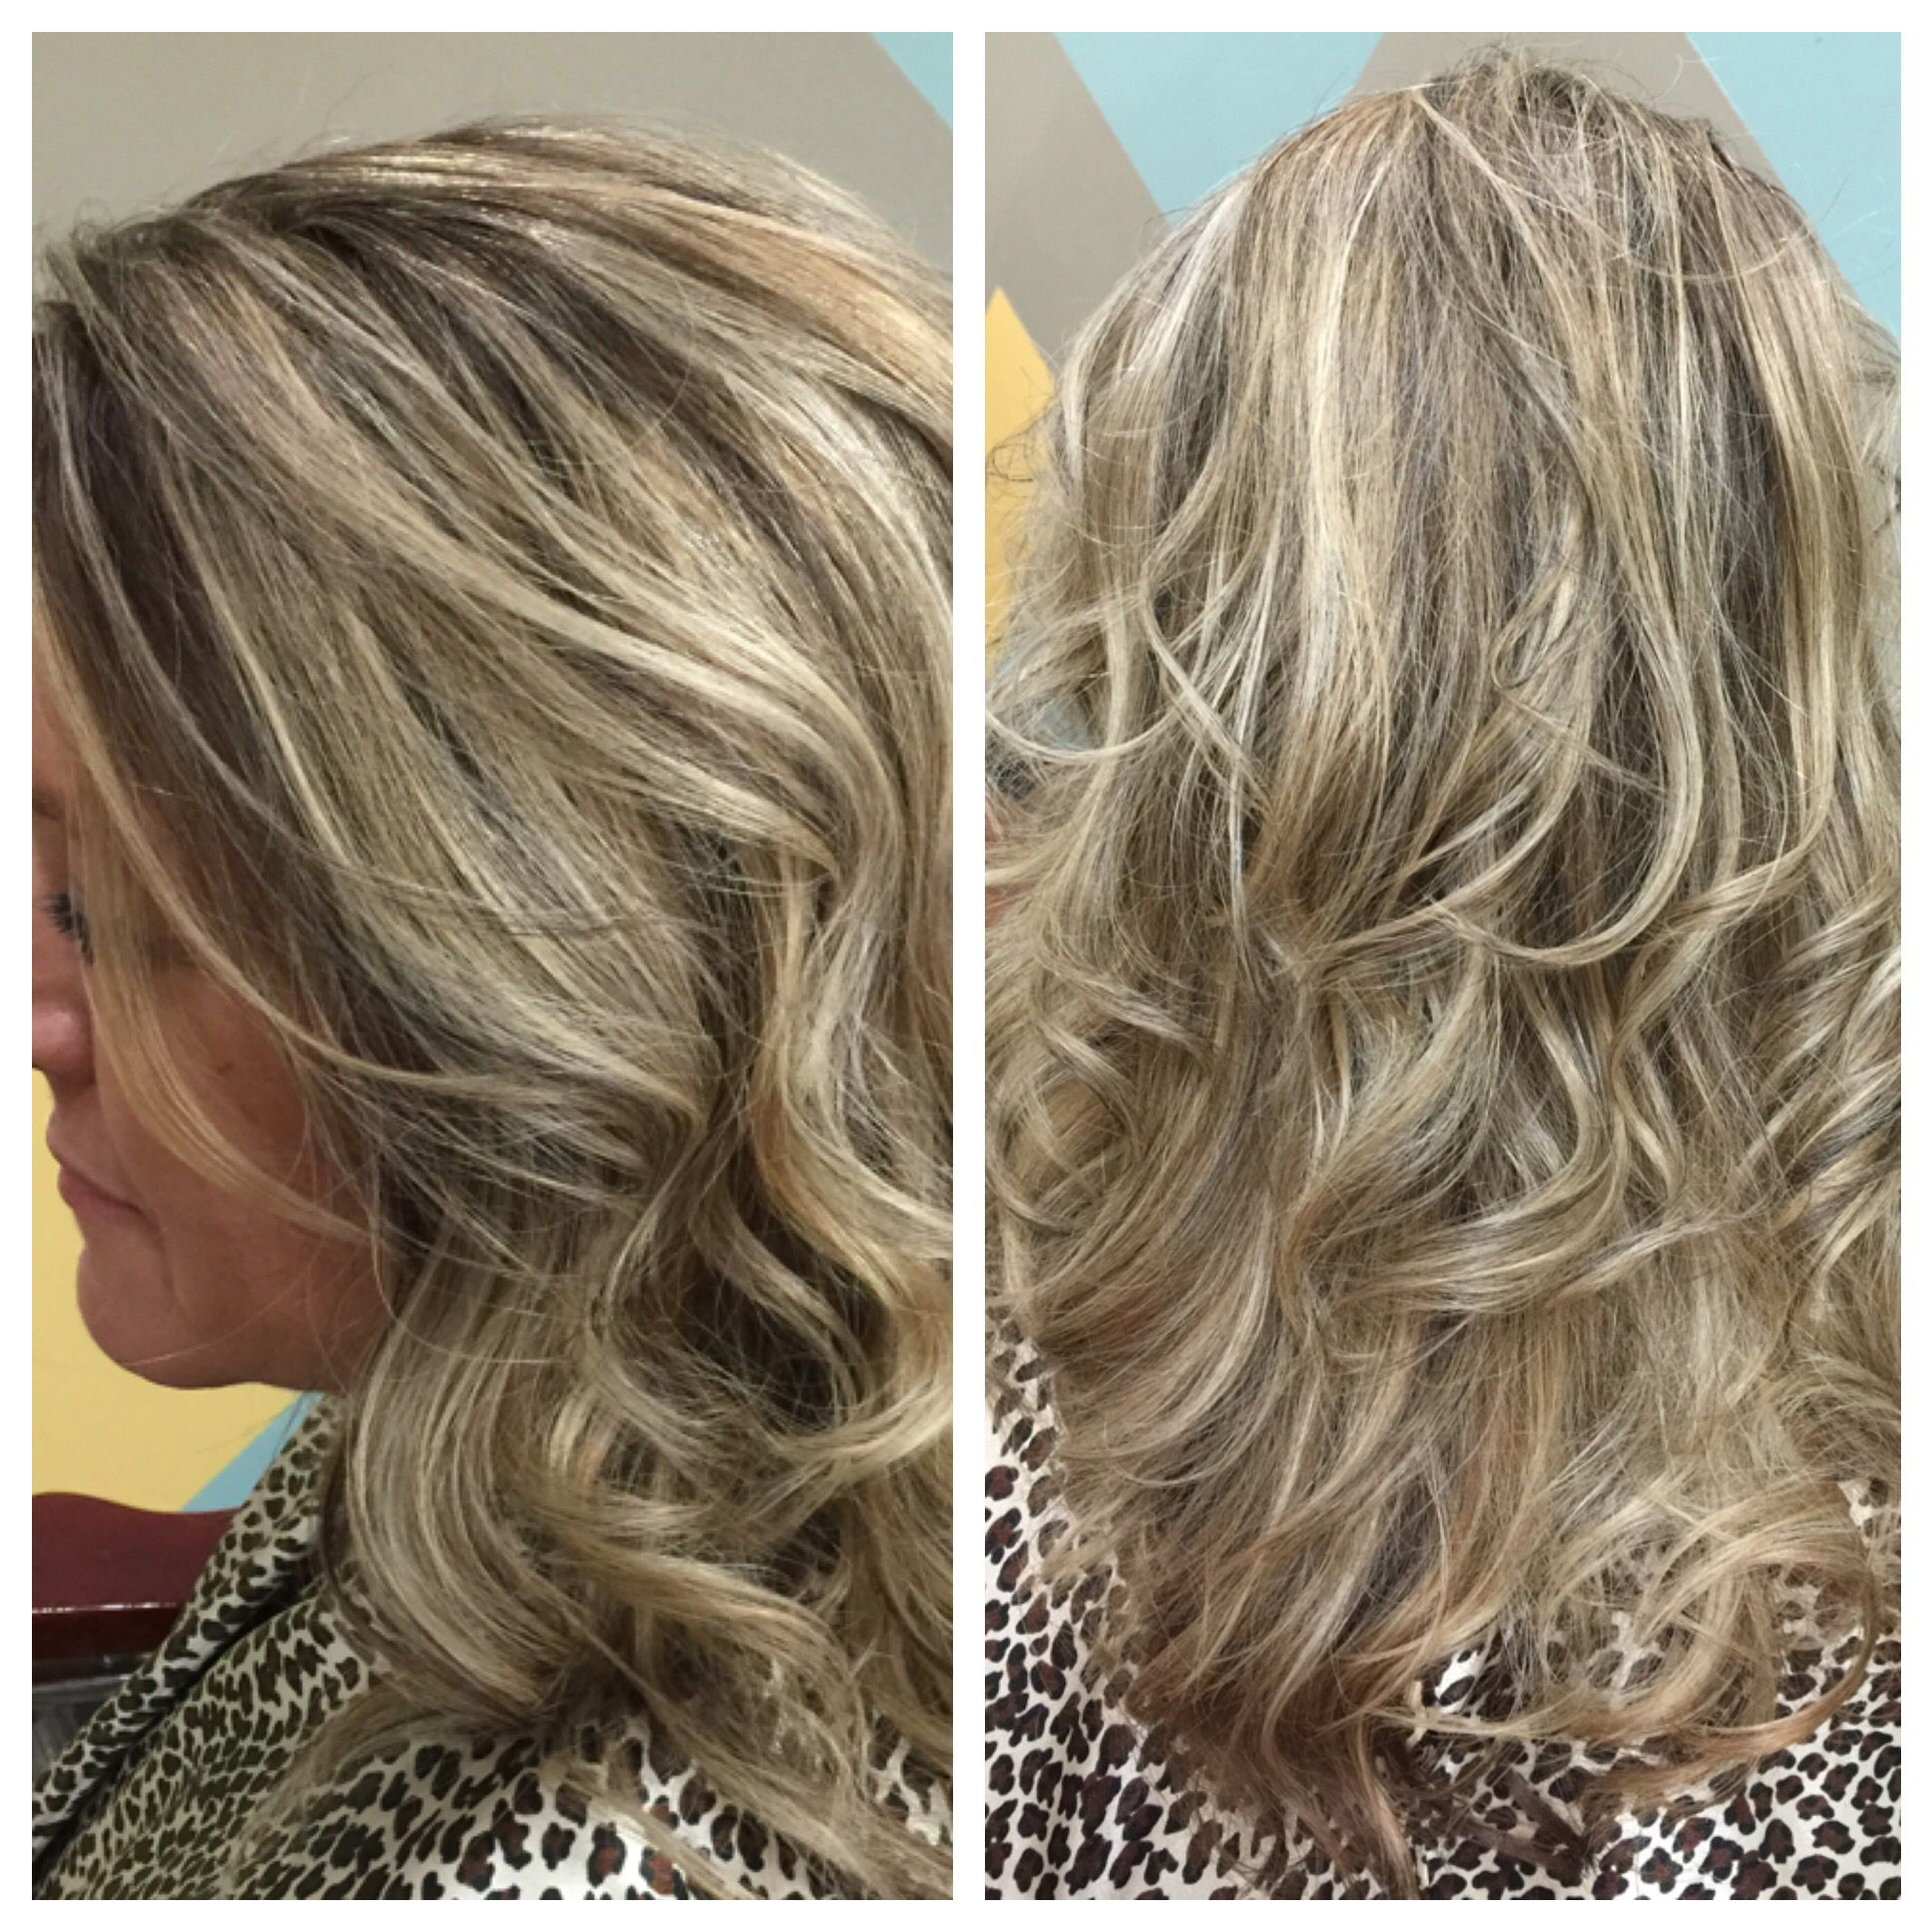 Hair by kristie chocolate blonde textures salon and tan